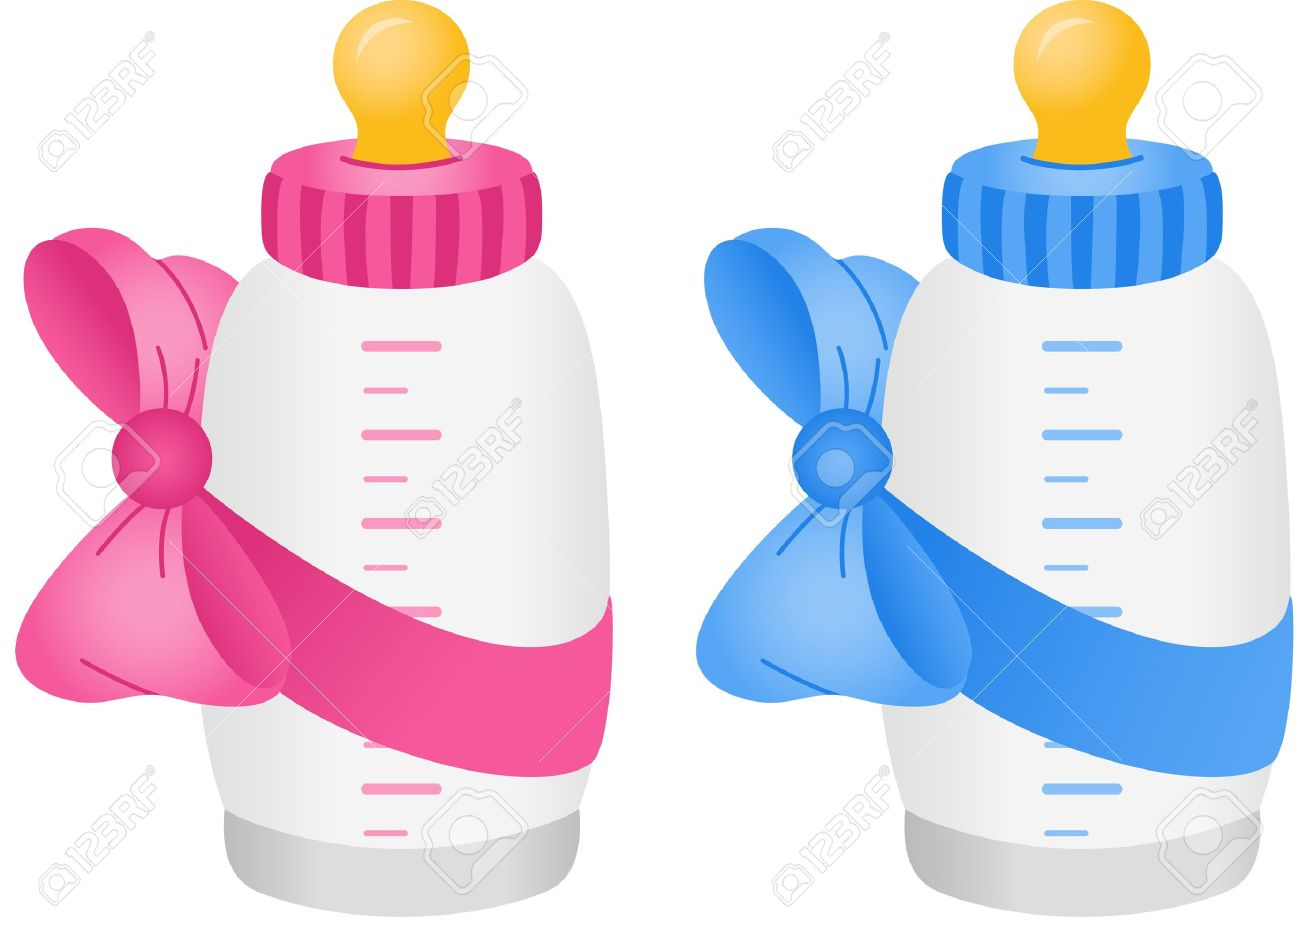 798 Baby Bottle free clipart.